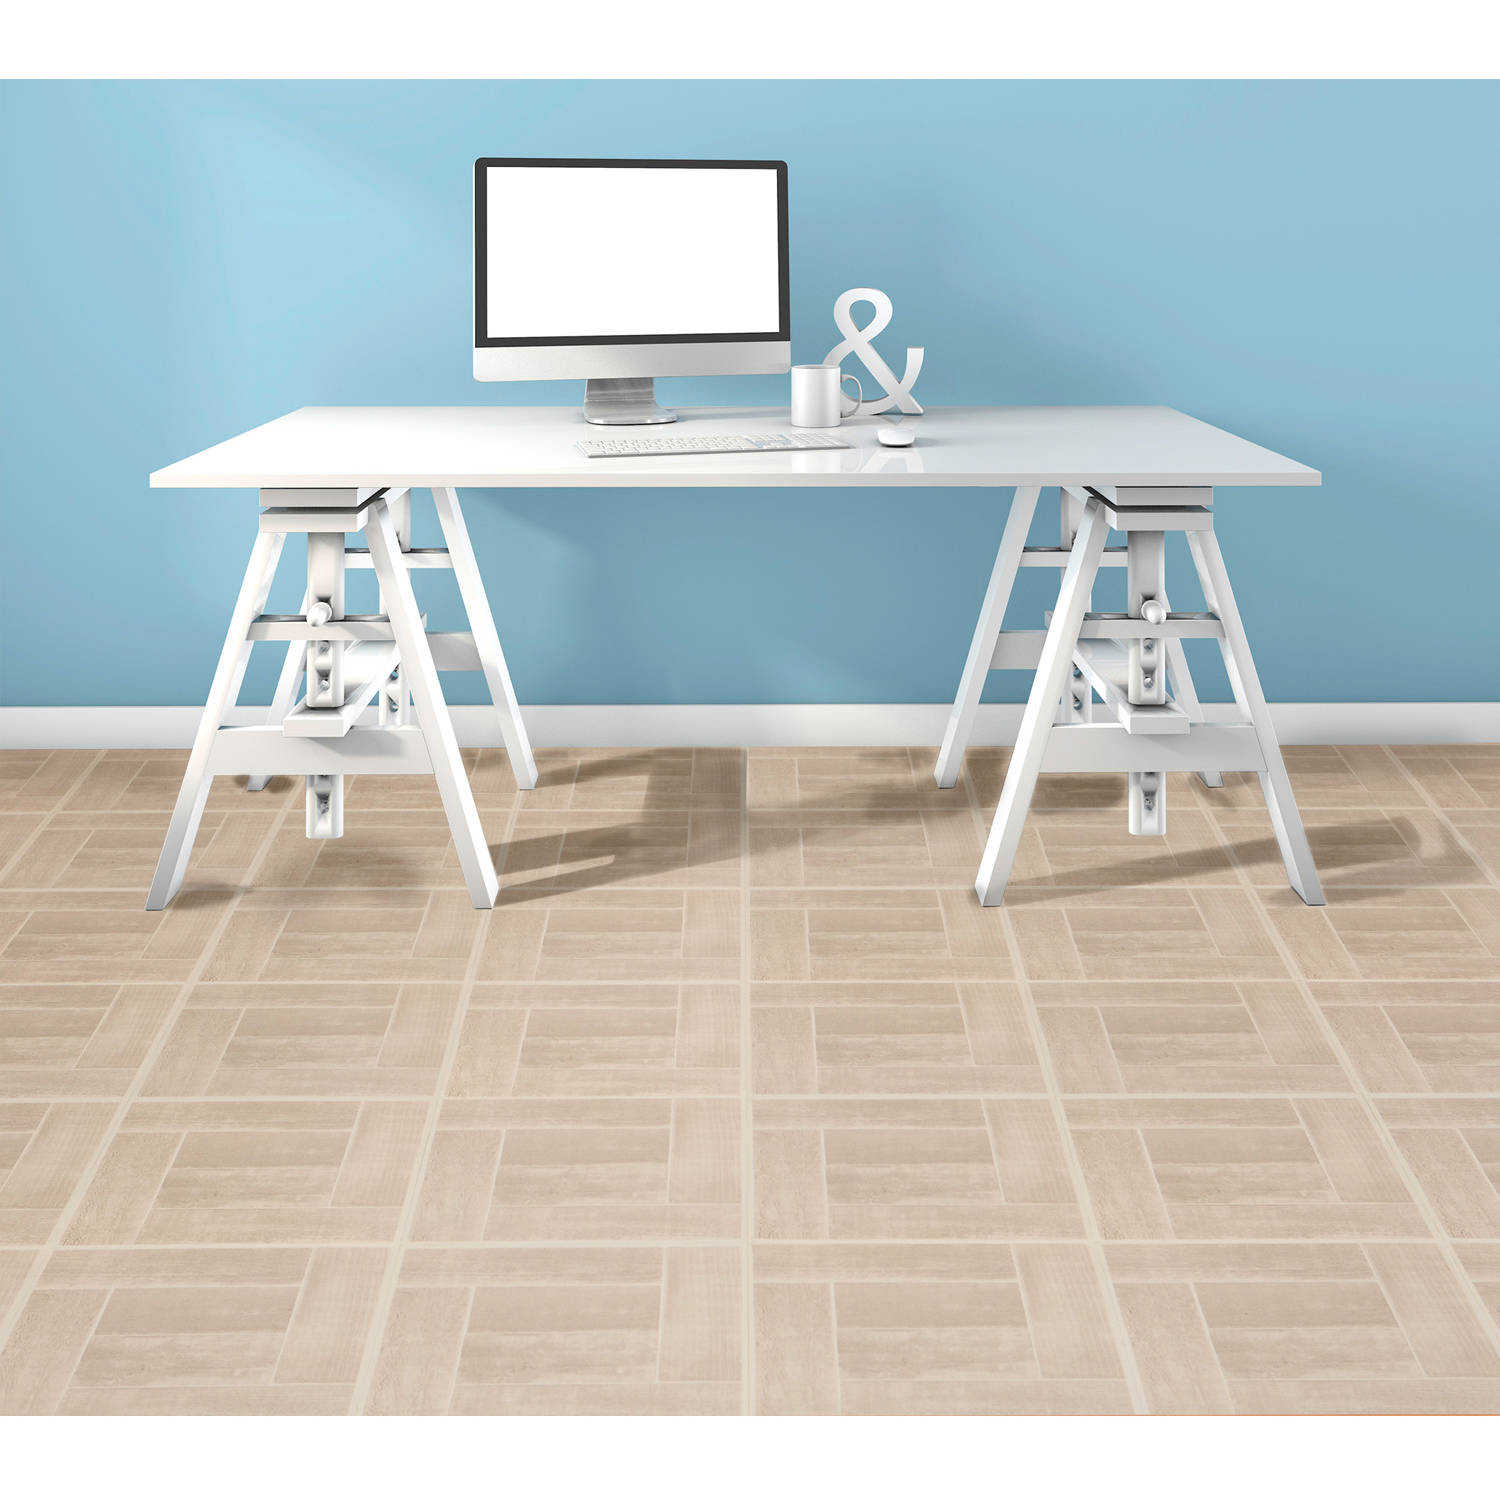 Achim Tivoli Saddlewood 12x12 Self Adhesive Vinyl Floor Tile - 45 Tiles/45 sq. ft.